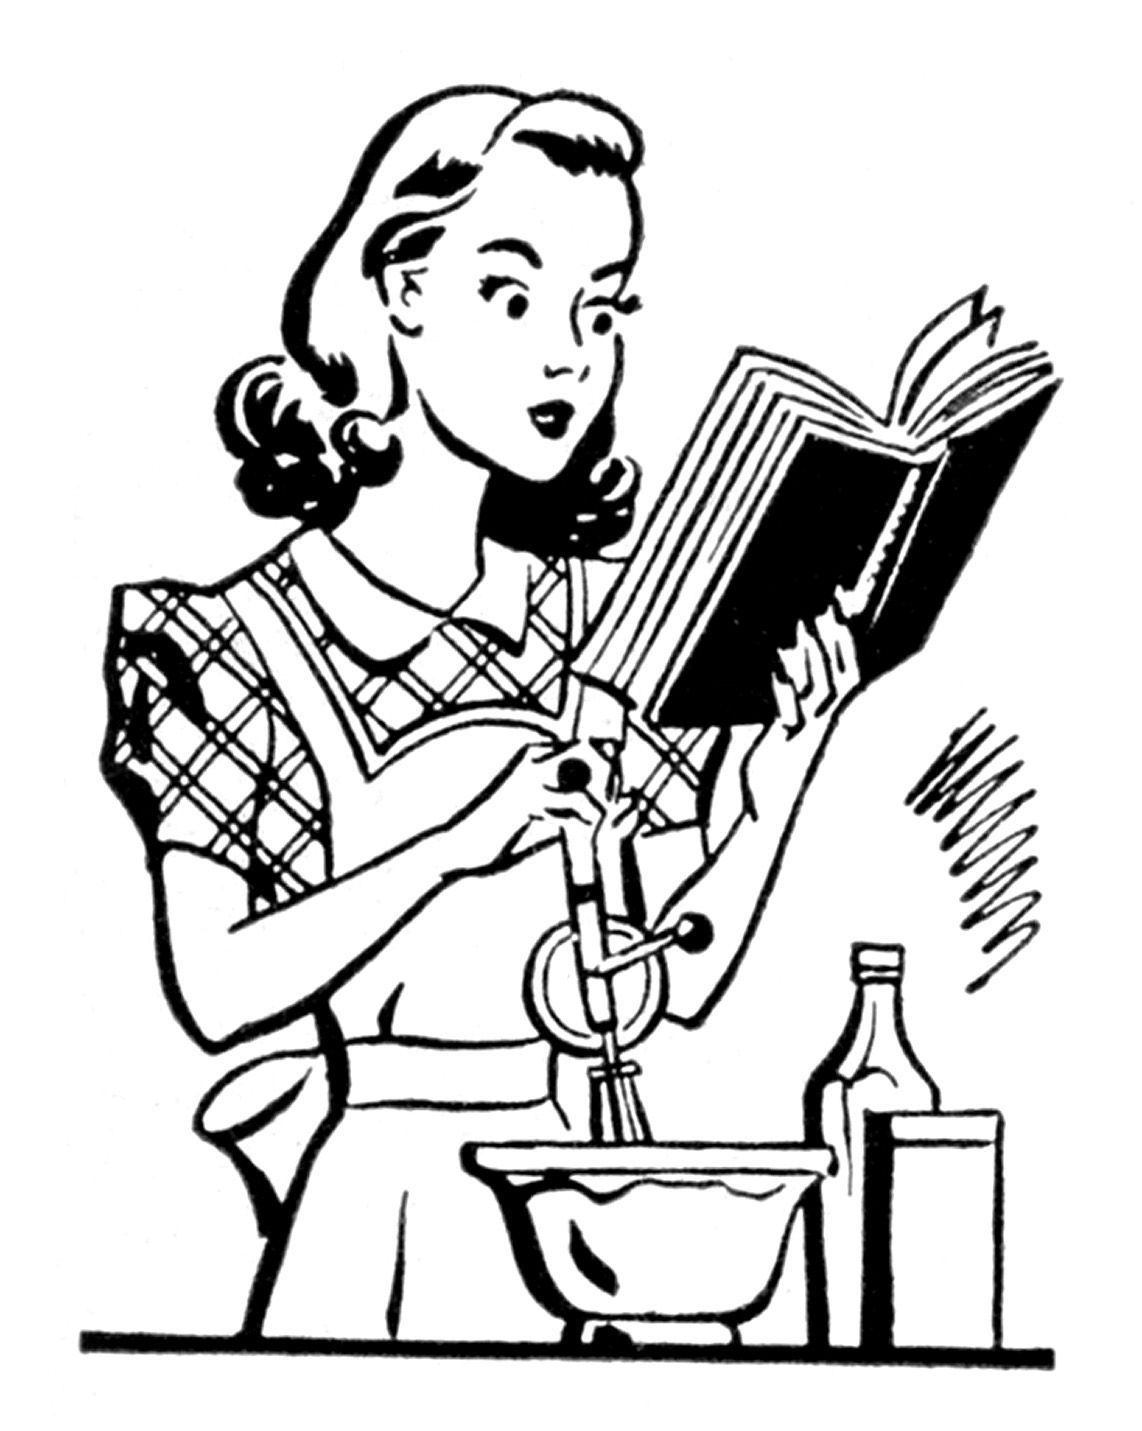 retro image baking mom wife just pinterobsessed graphics Ford Fairlane Crown Victoria Skyliner click on image to enlarge this is another cutey patootie image from the 1940 s printers book this one shows a young wife or mom who appears to be baking